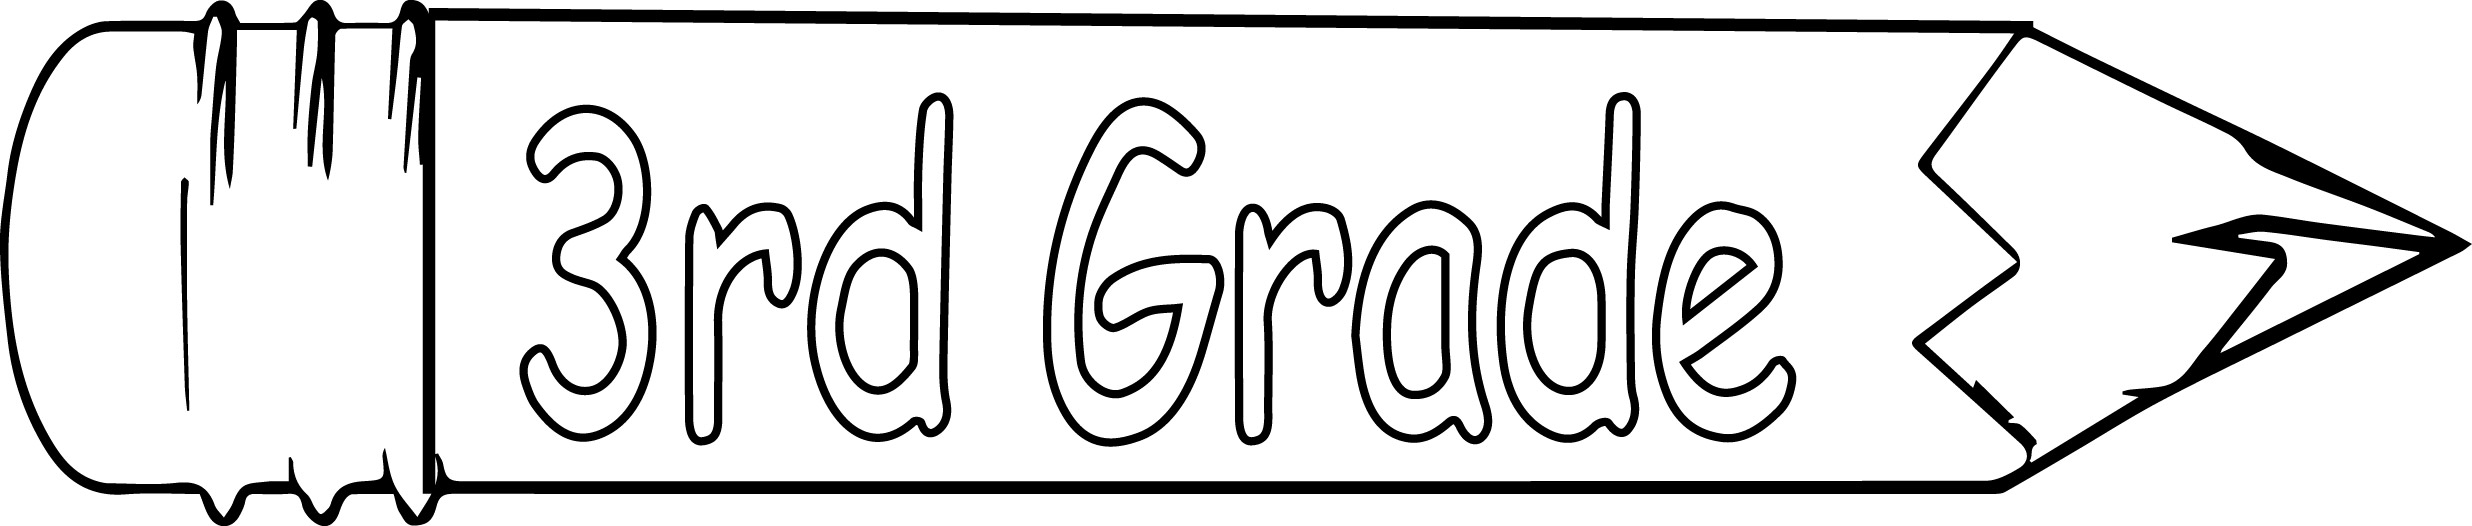 coloring sheets 3rd grade nice wild about text 3rd grade coloring page coloring sheets coloring 3rd grade